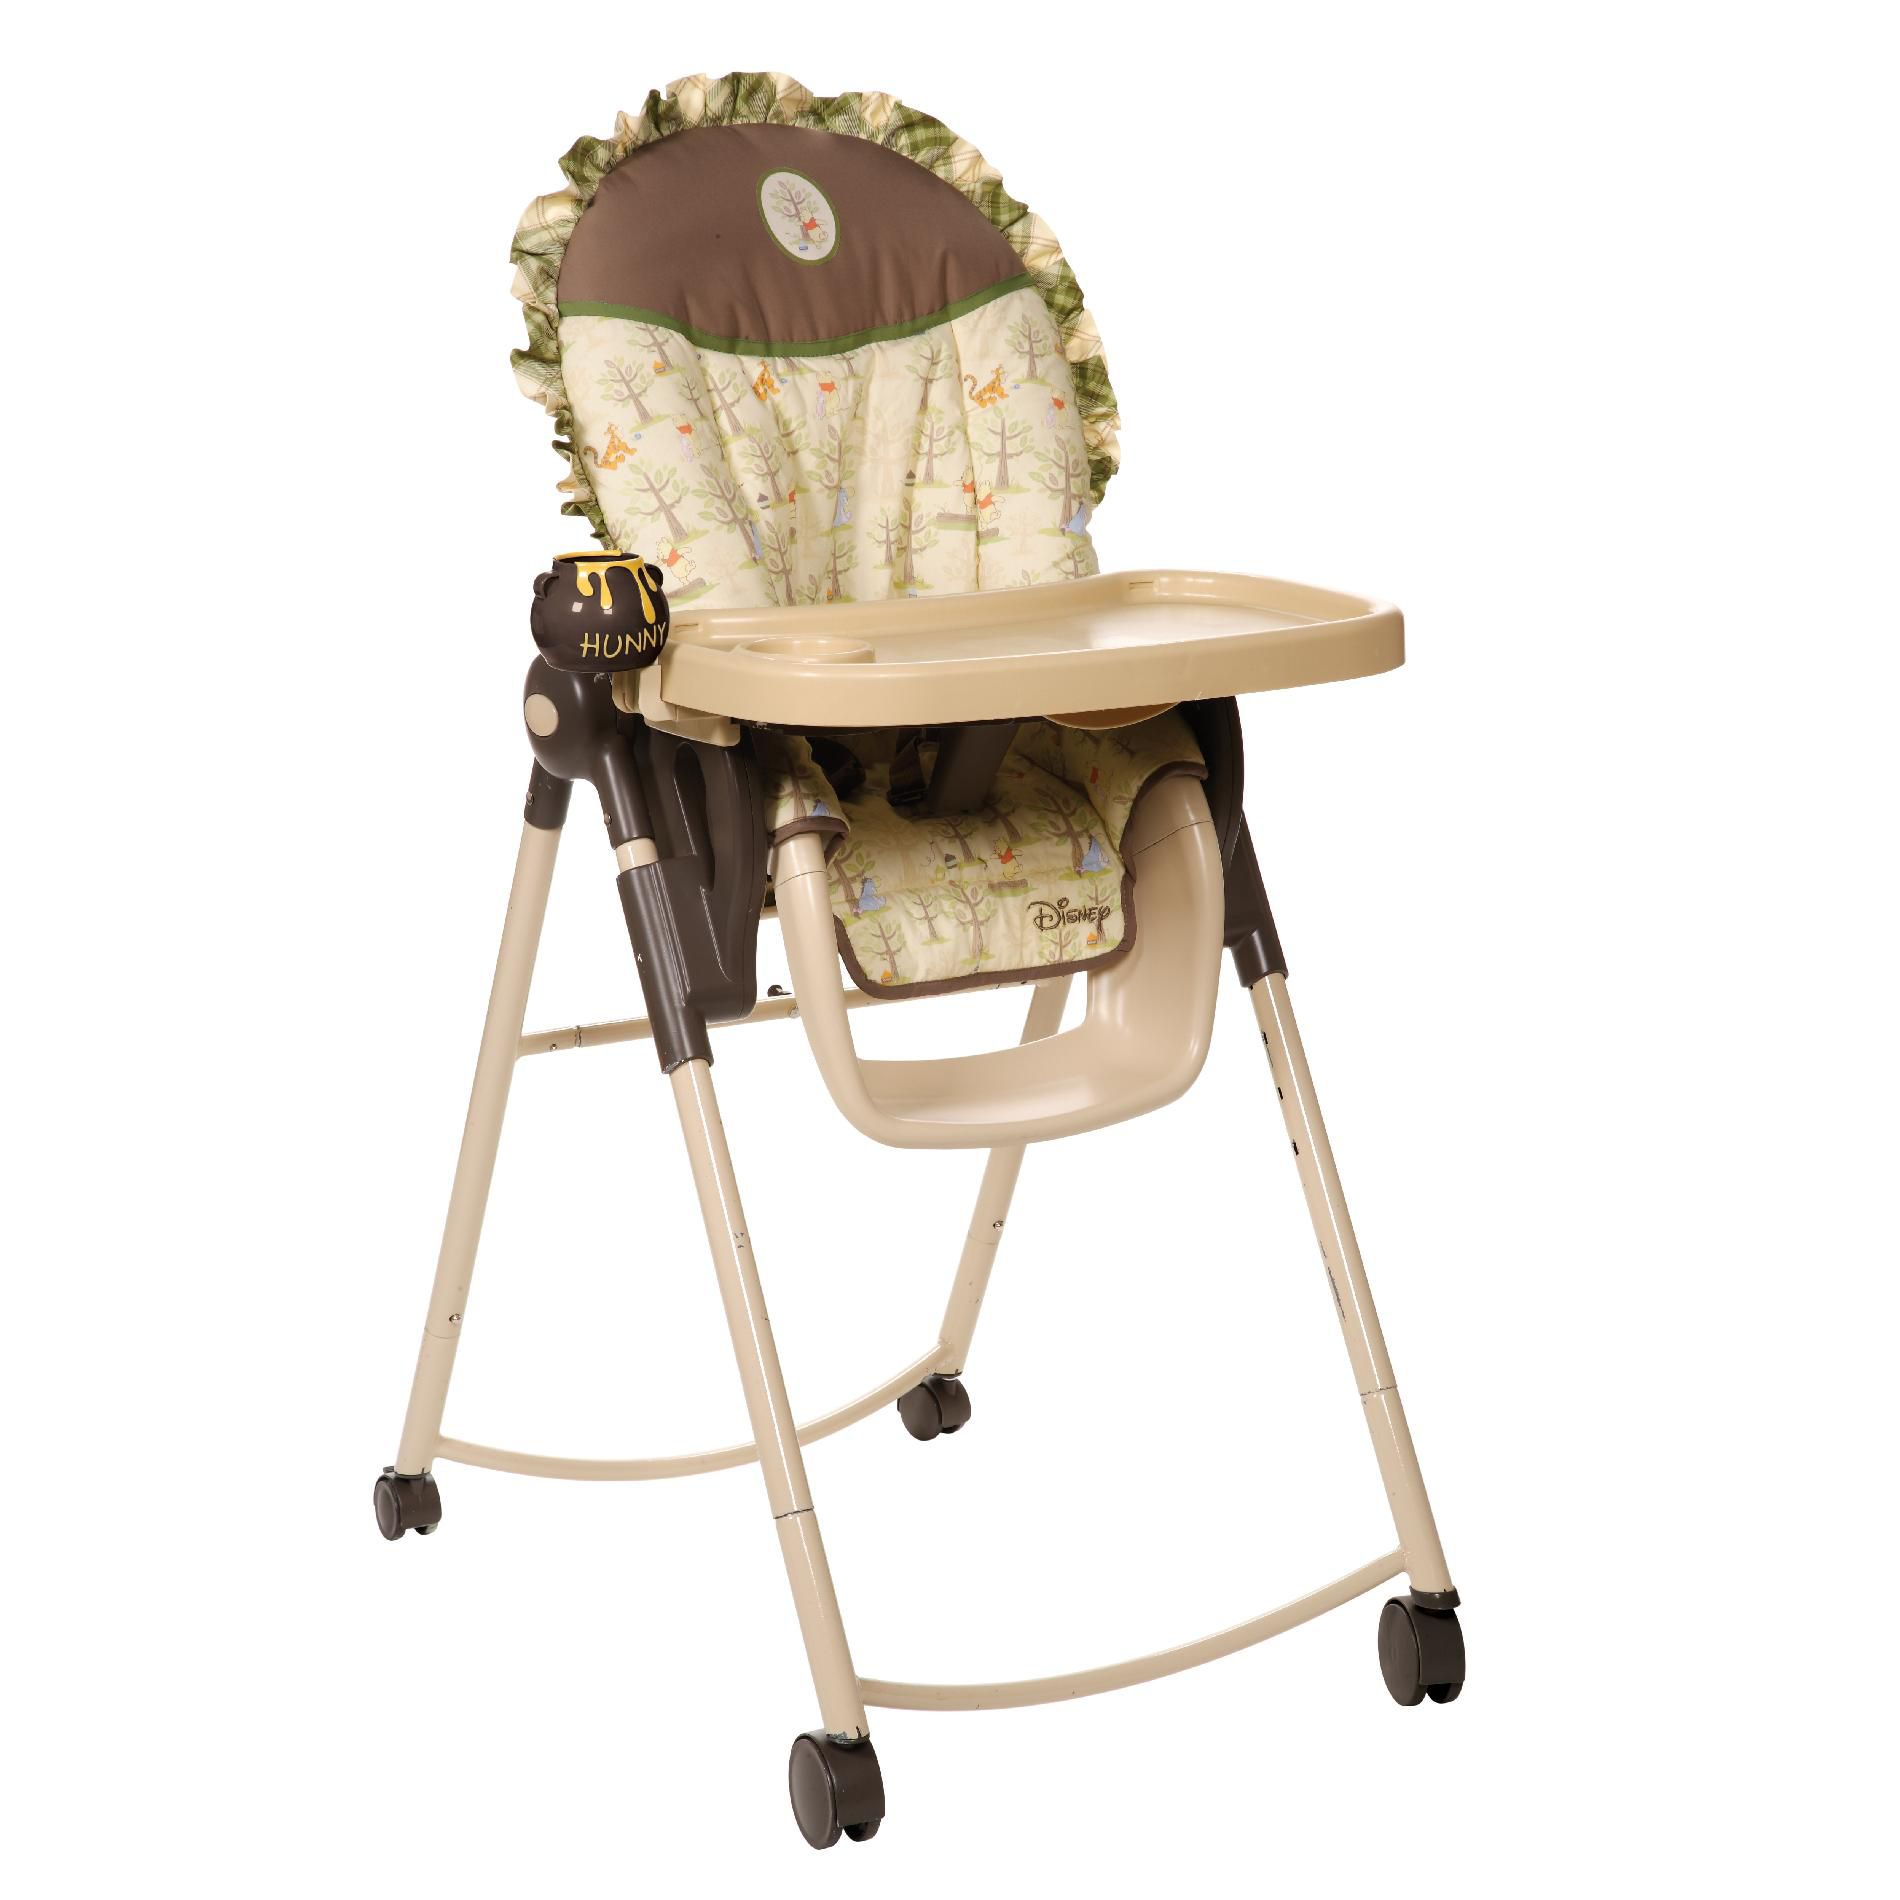 Adjustable High Chair Disney Winnie The Pooh Adjustable High Chair Picnic Place